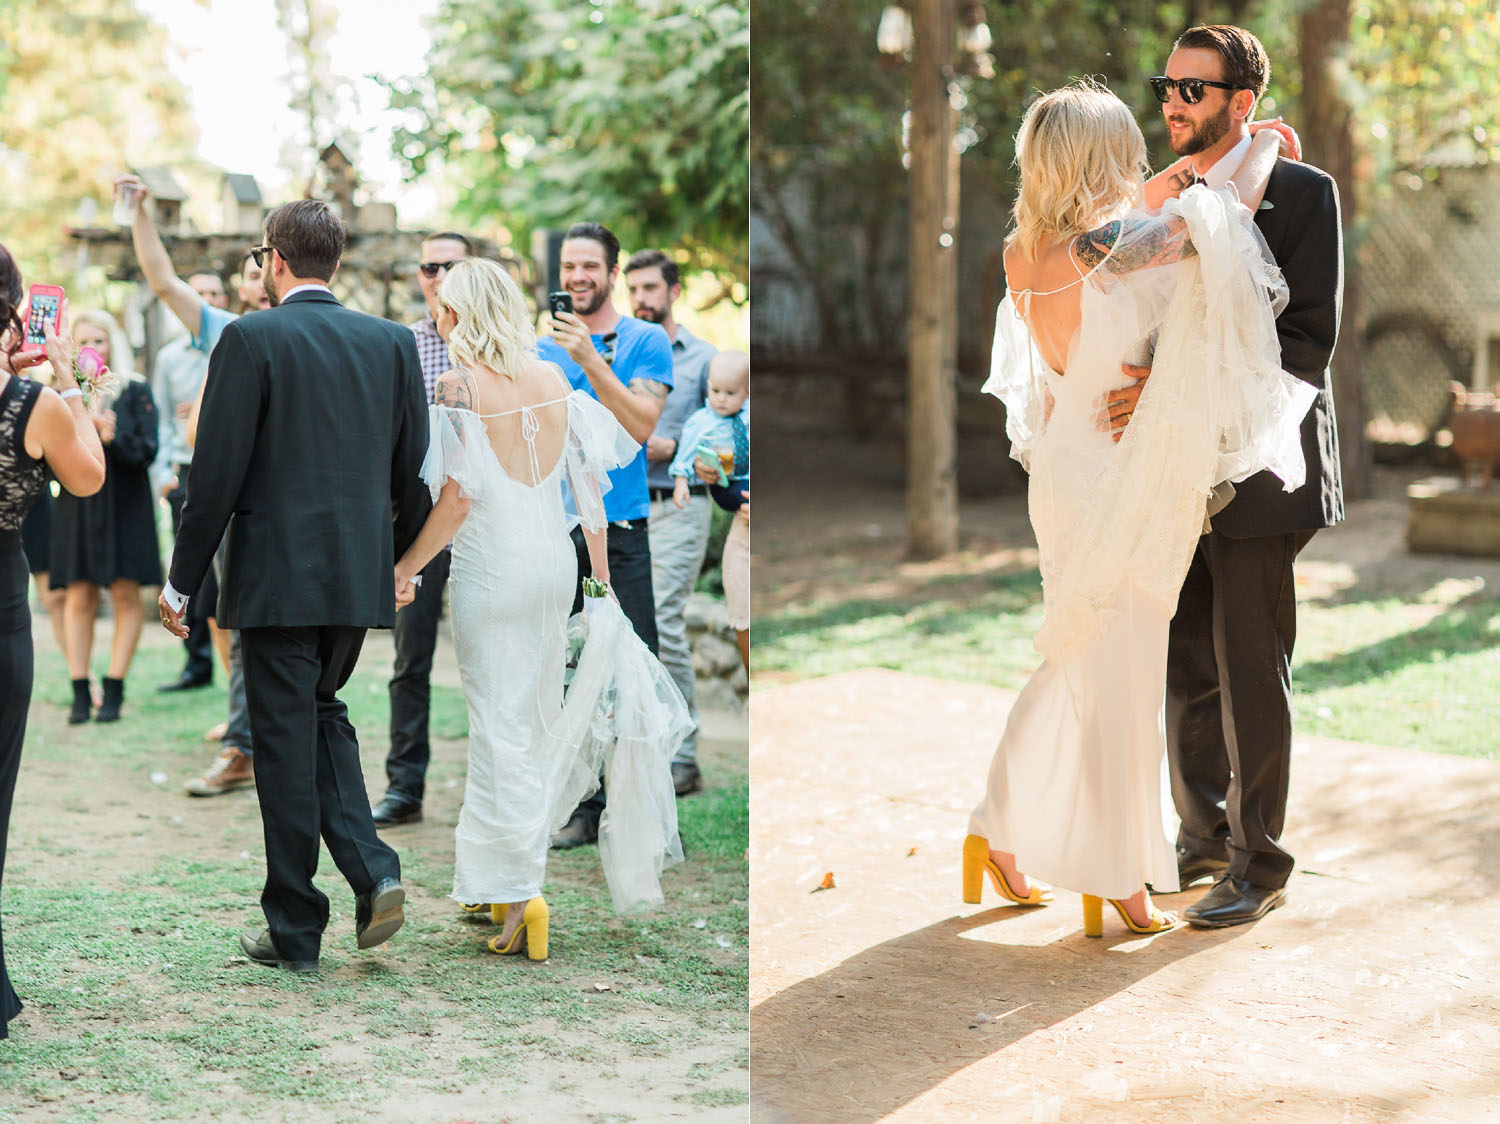 The Photege - Elegant Boho Wedding on Suburu Farm in Bakersfield California- Cassie and Darin Buoni-3046